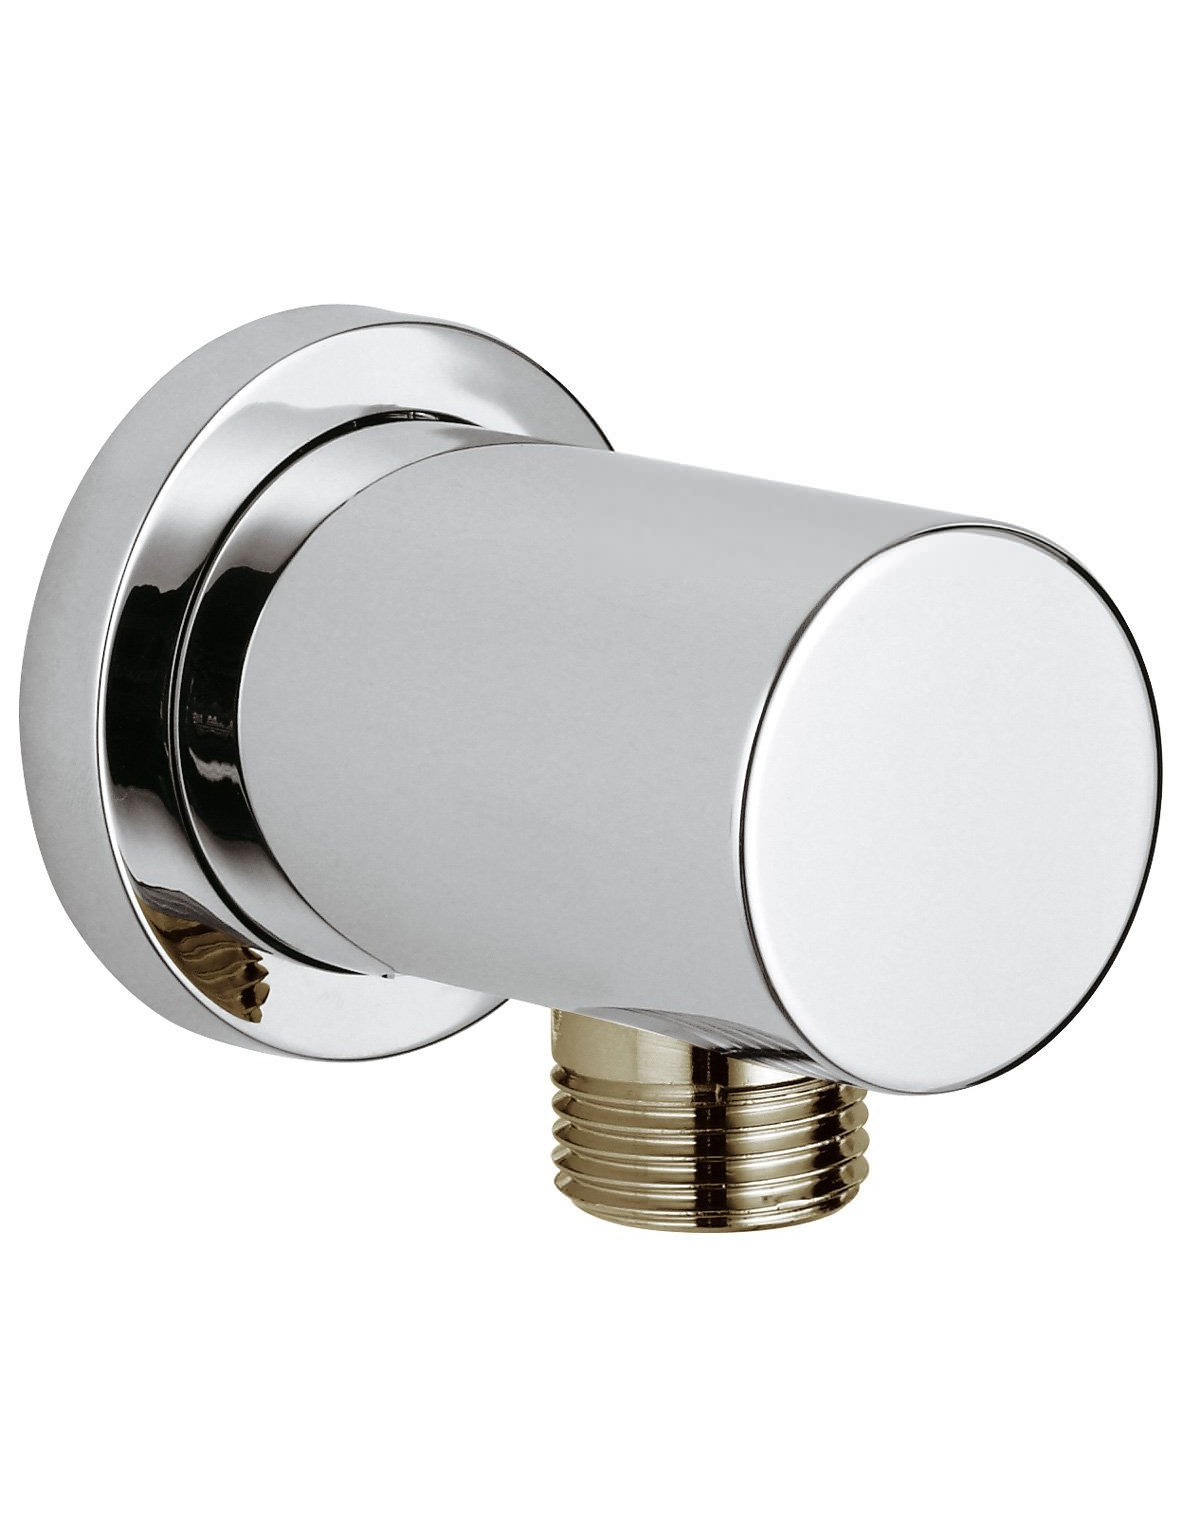 Grohe rainshower round shower outlet elbow chrome for Griferia grohe outlet